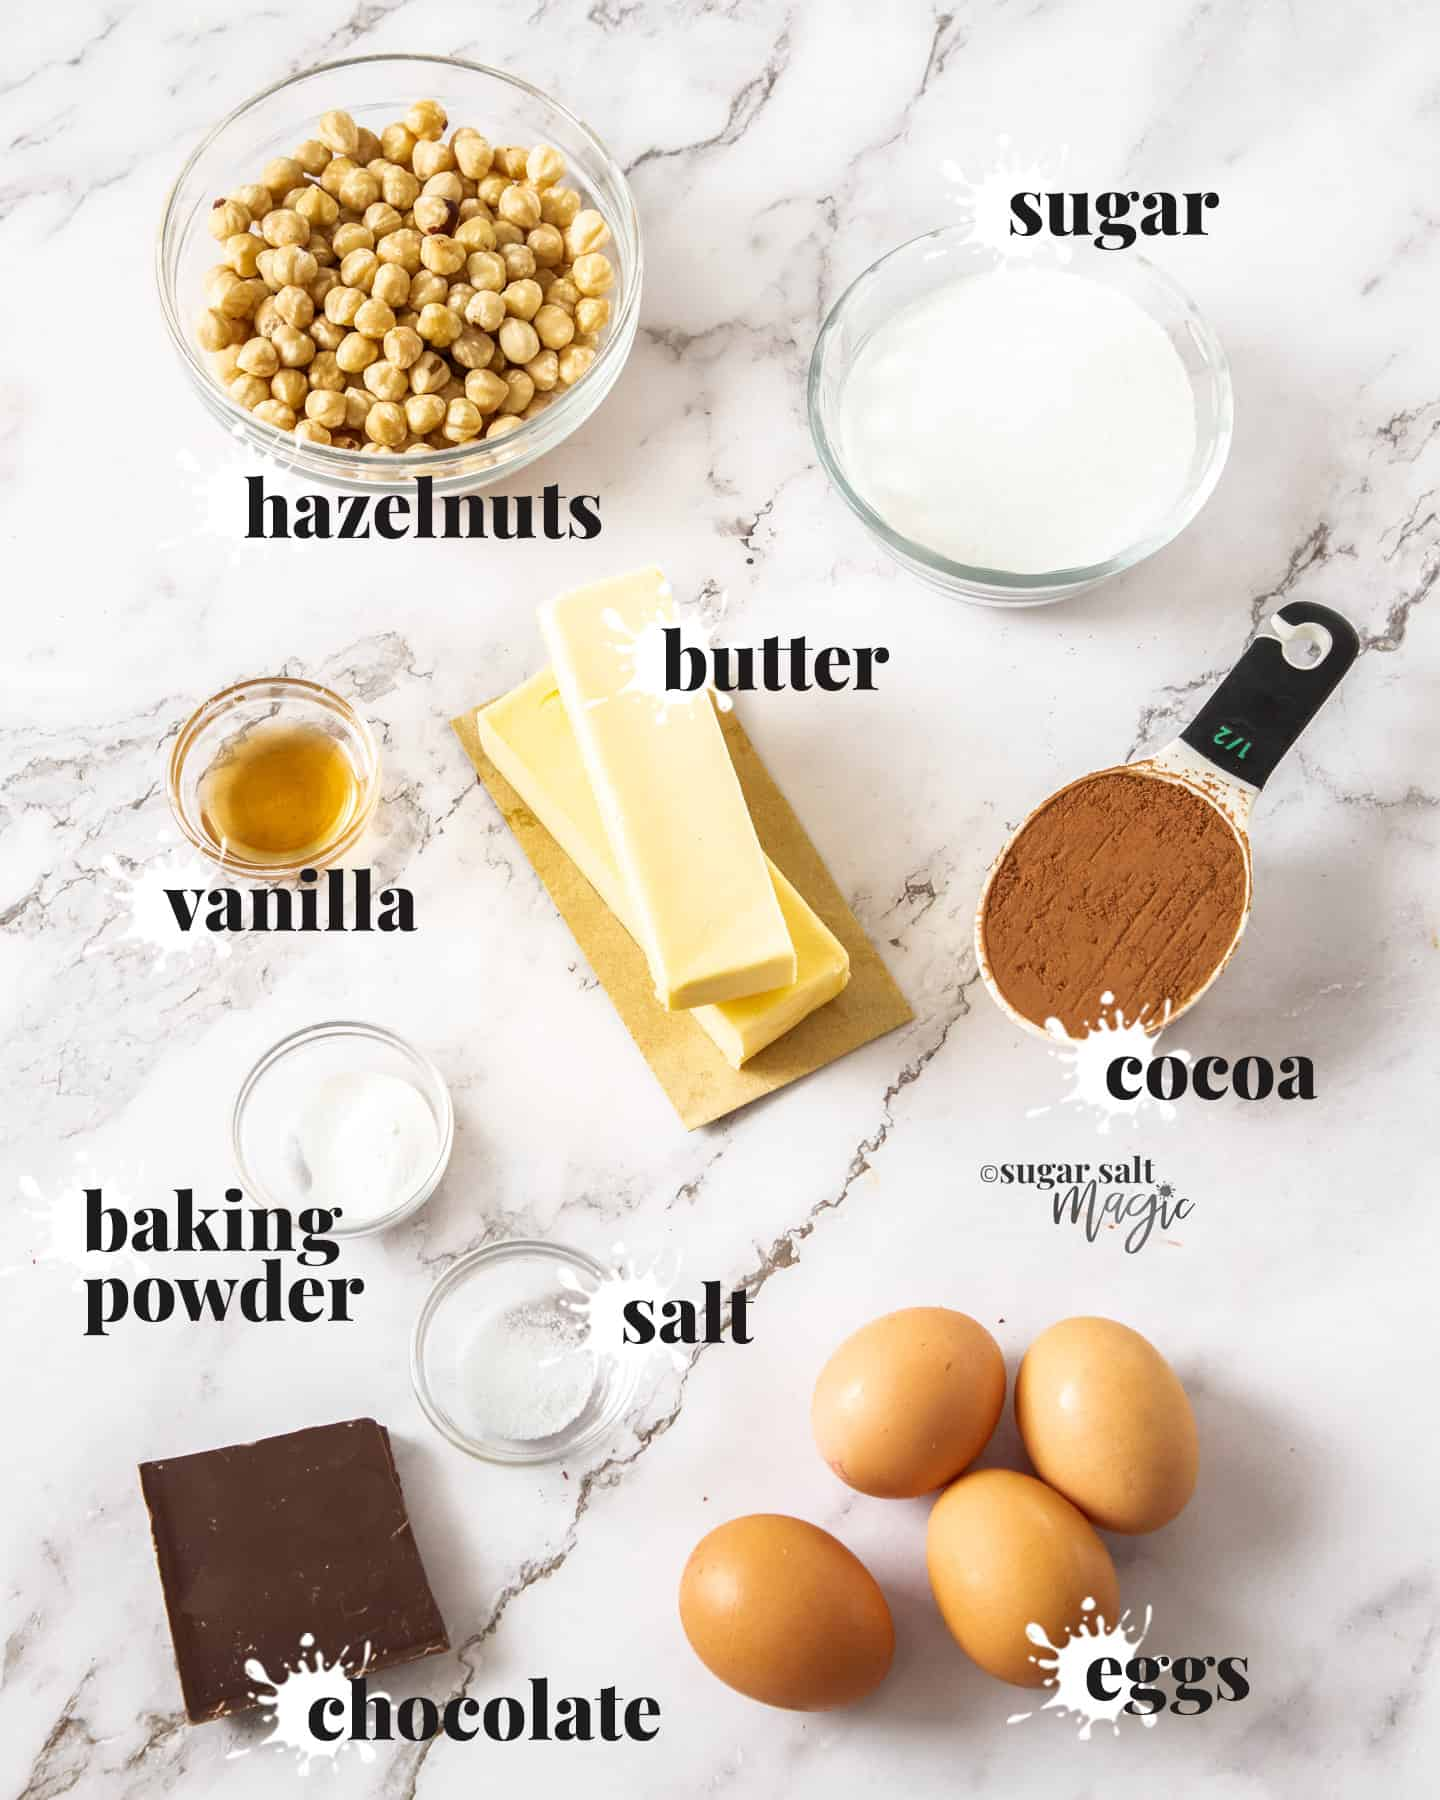 Ingredients for chocolate flourless cake on a white marble background.